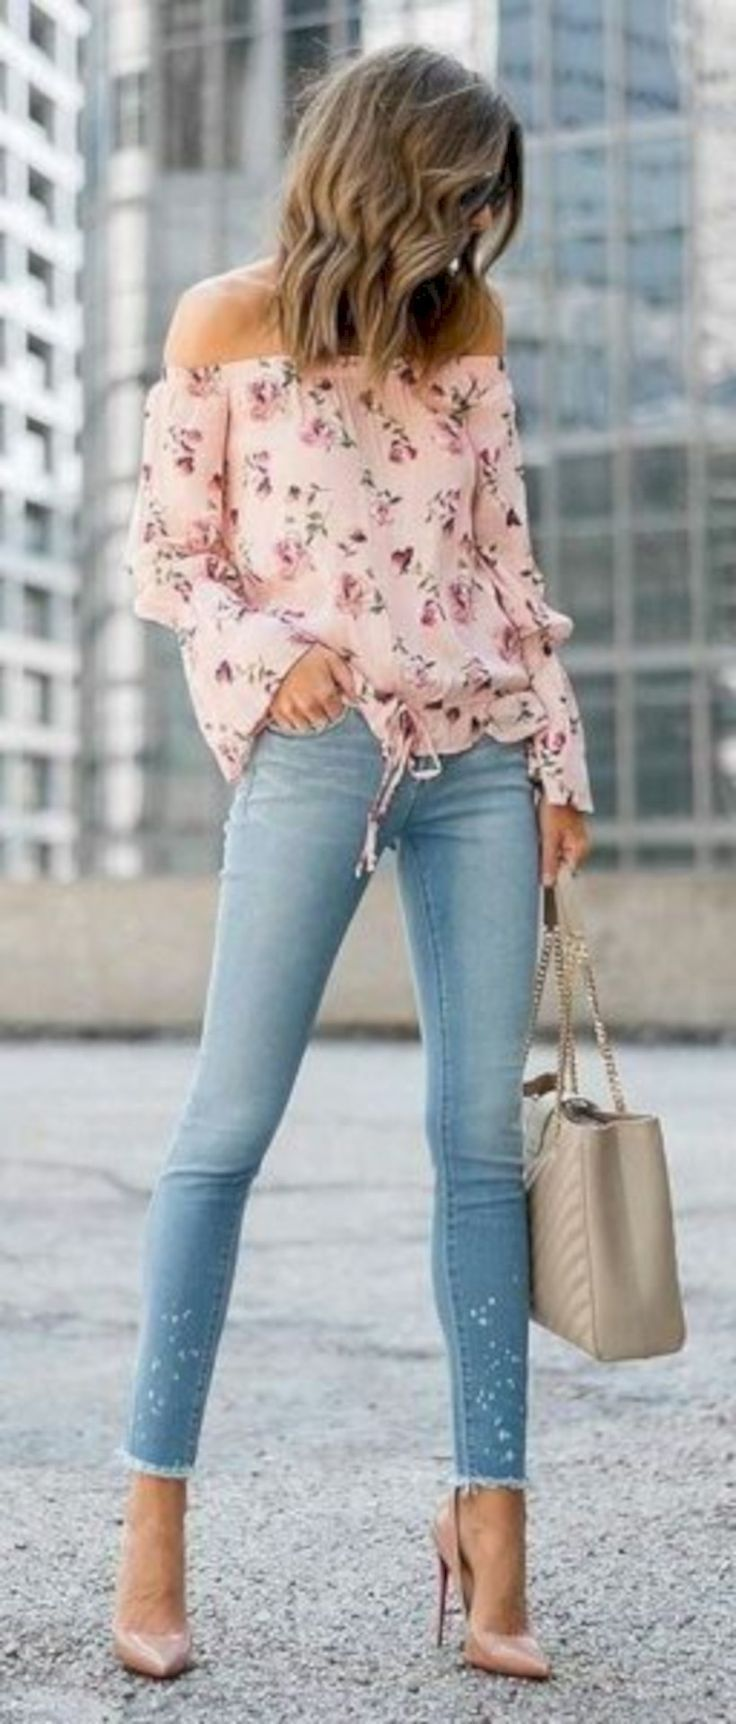 34 Casual Chic Outfit Ideas for Summer | Fashion and Style ...